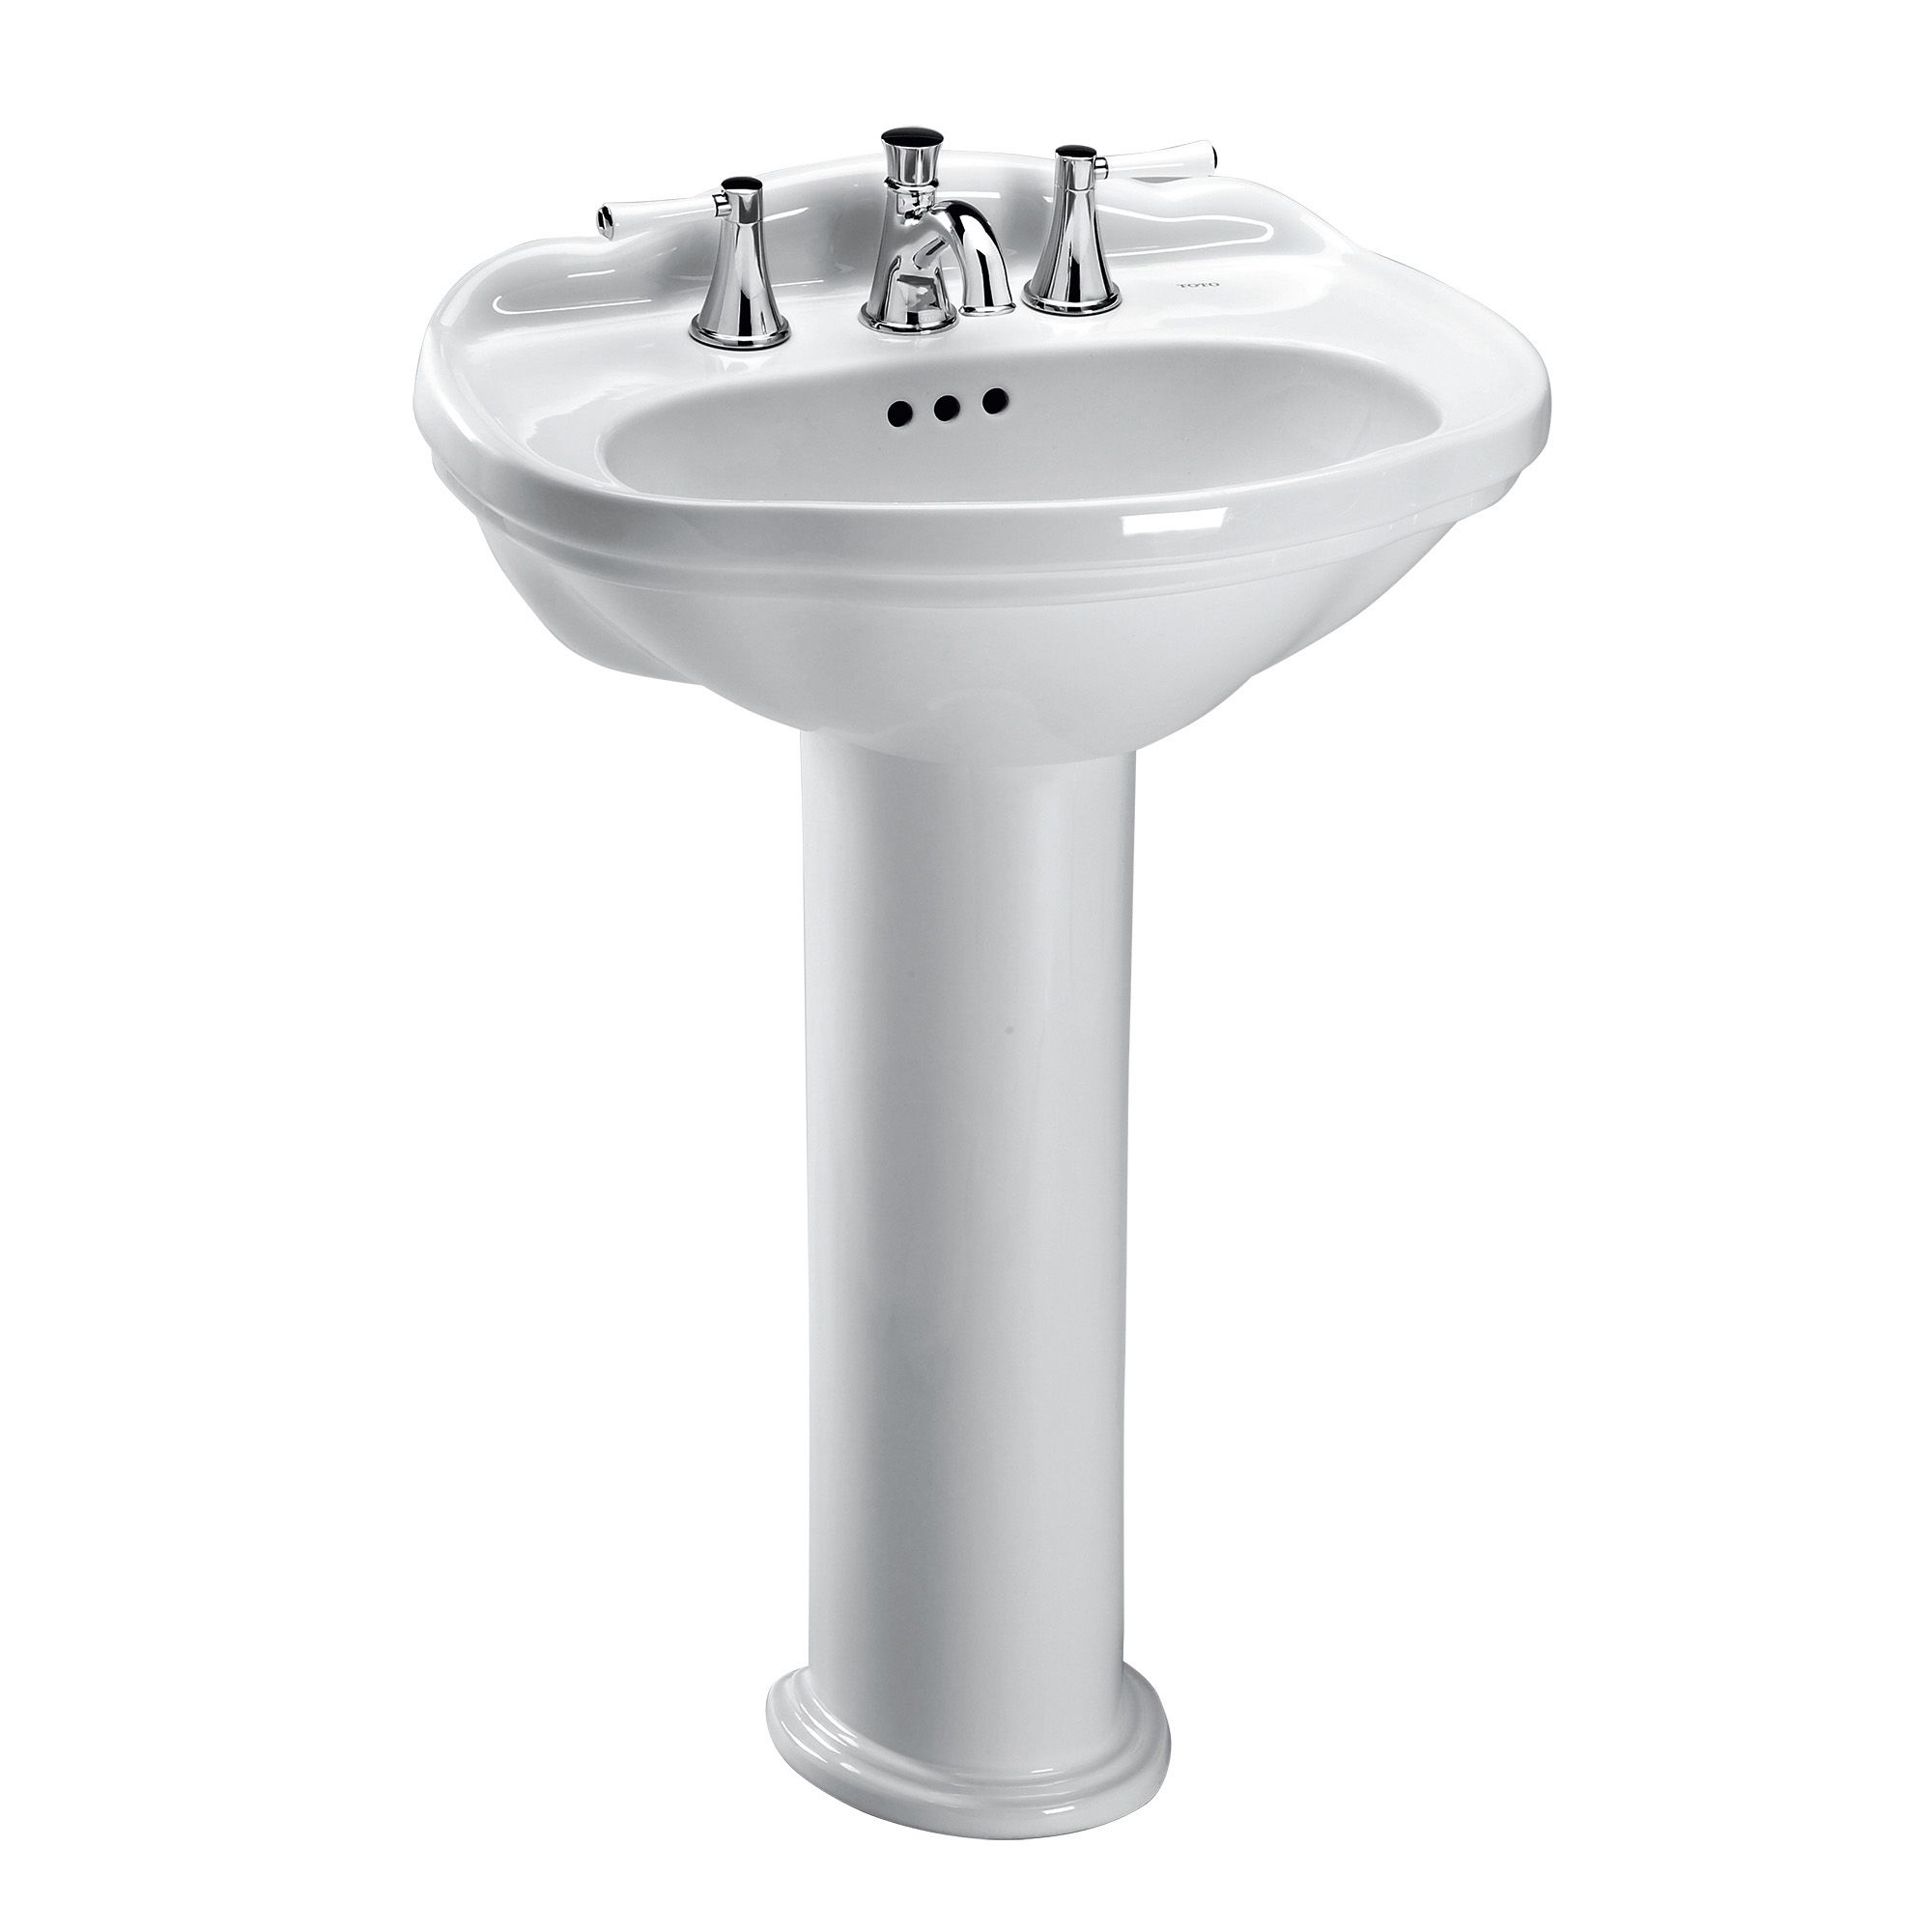 Toto Whitney Oval Pedestal Bathroom Sink For 8 Inch Center Faucets